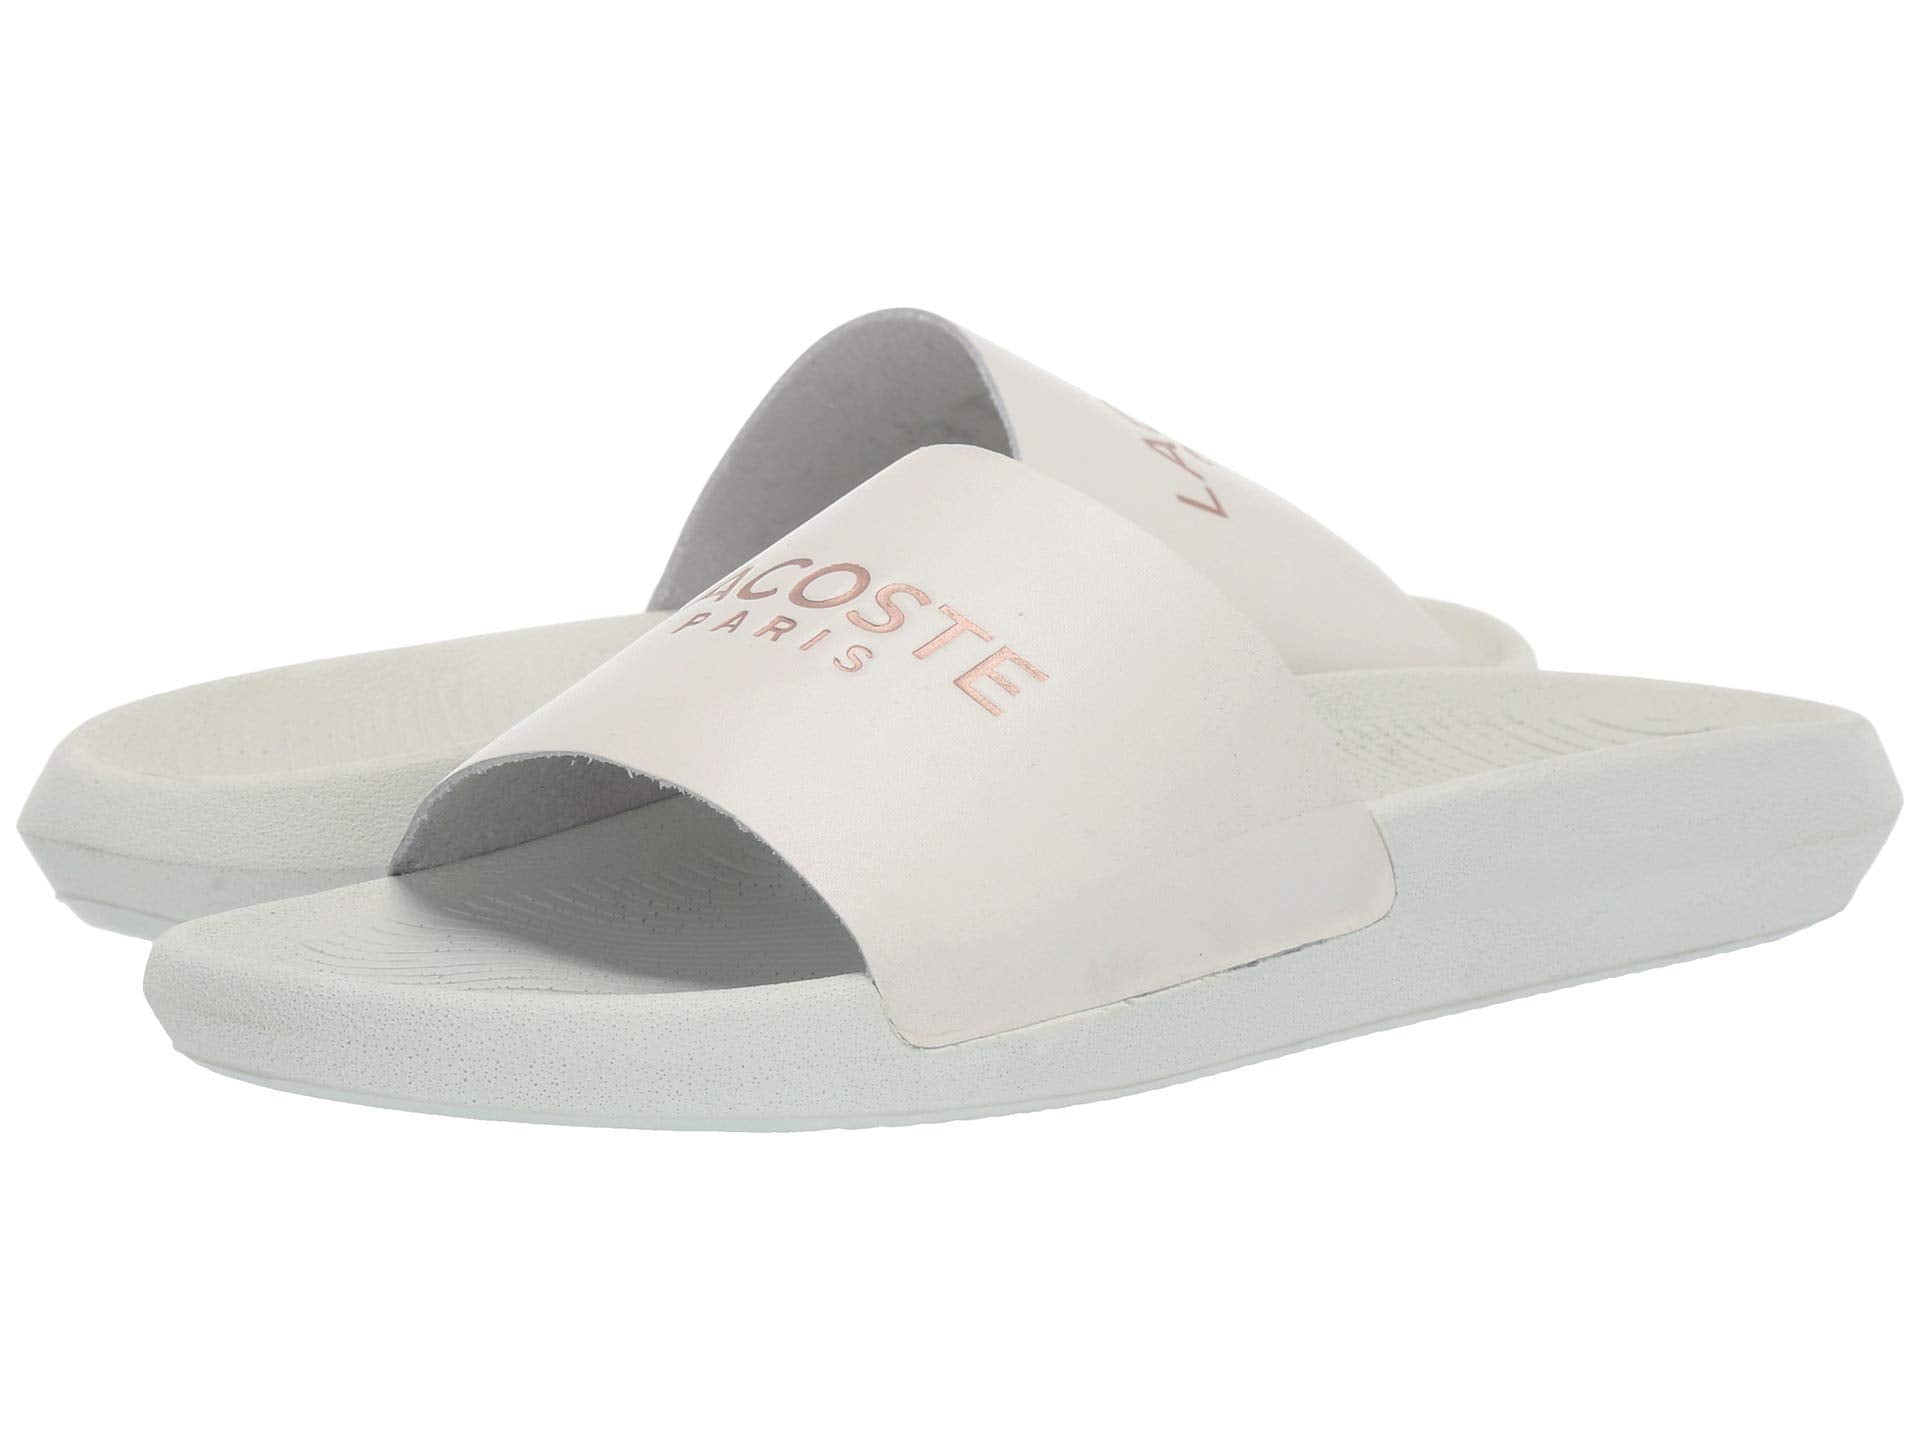 3d3bf8d00 Lacoste Croco Slide 119 2 – Yashry